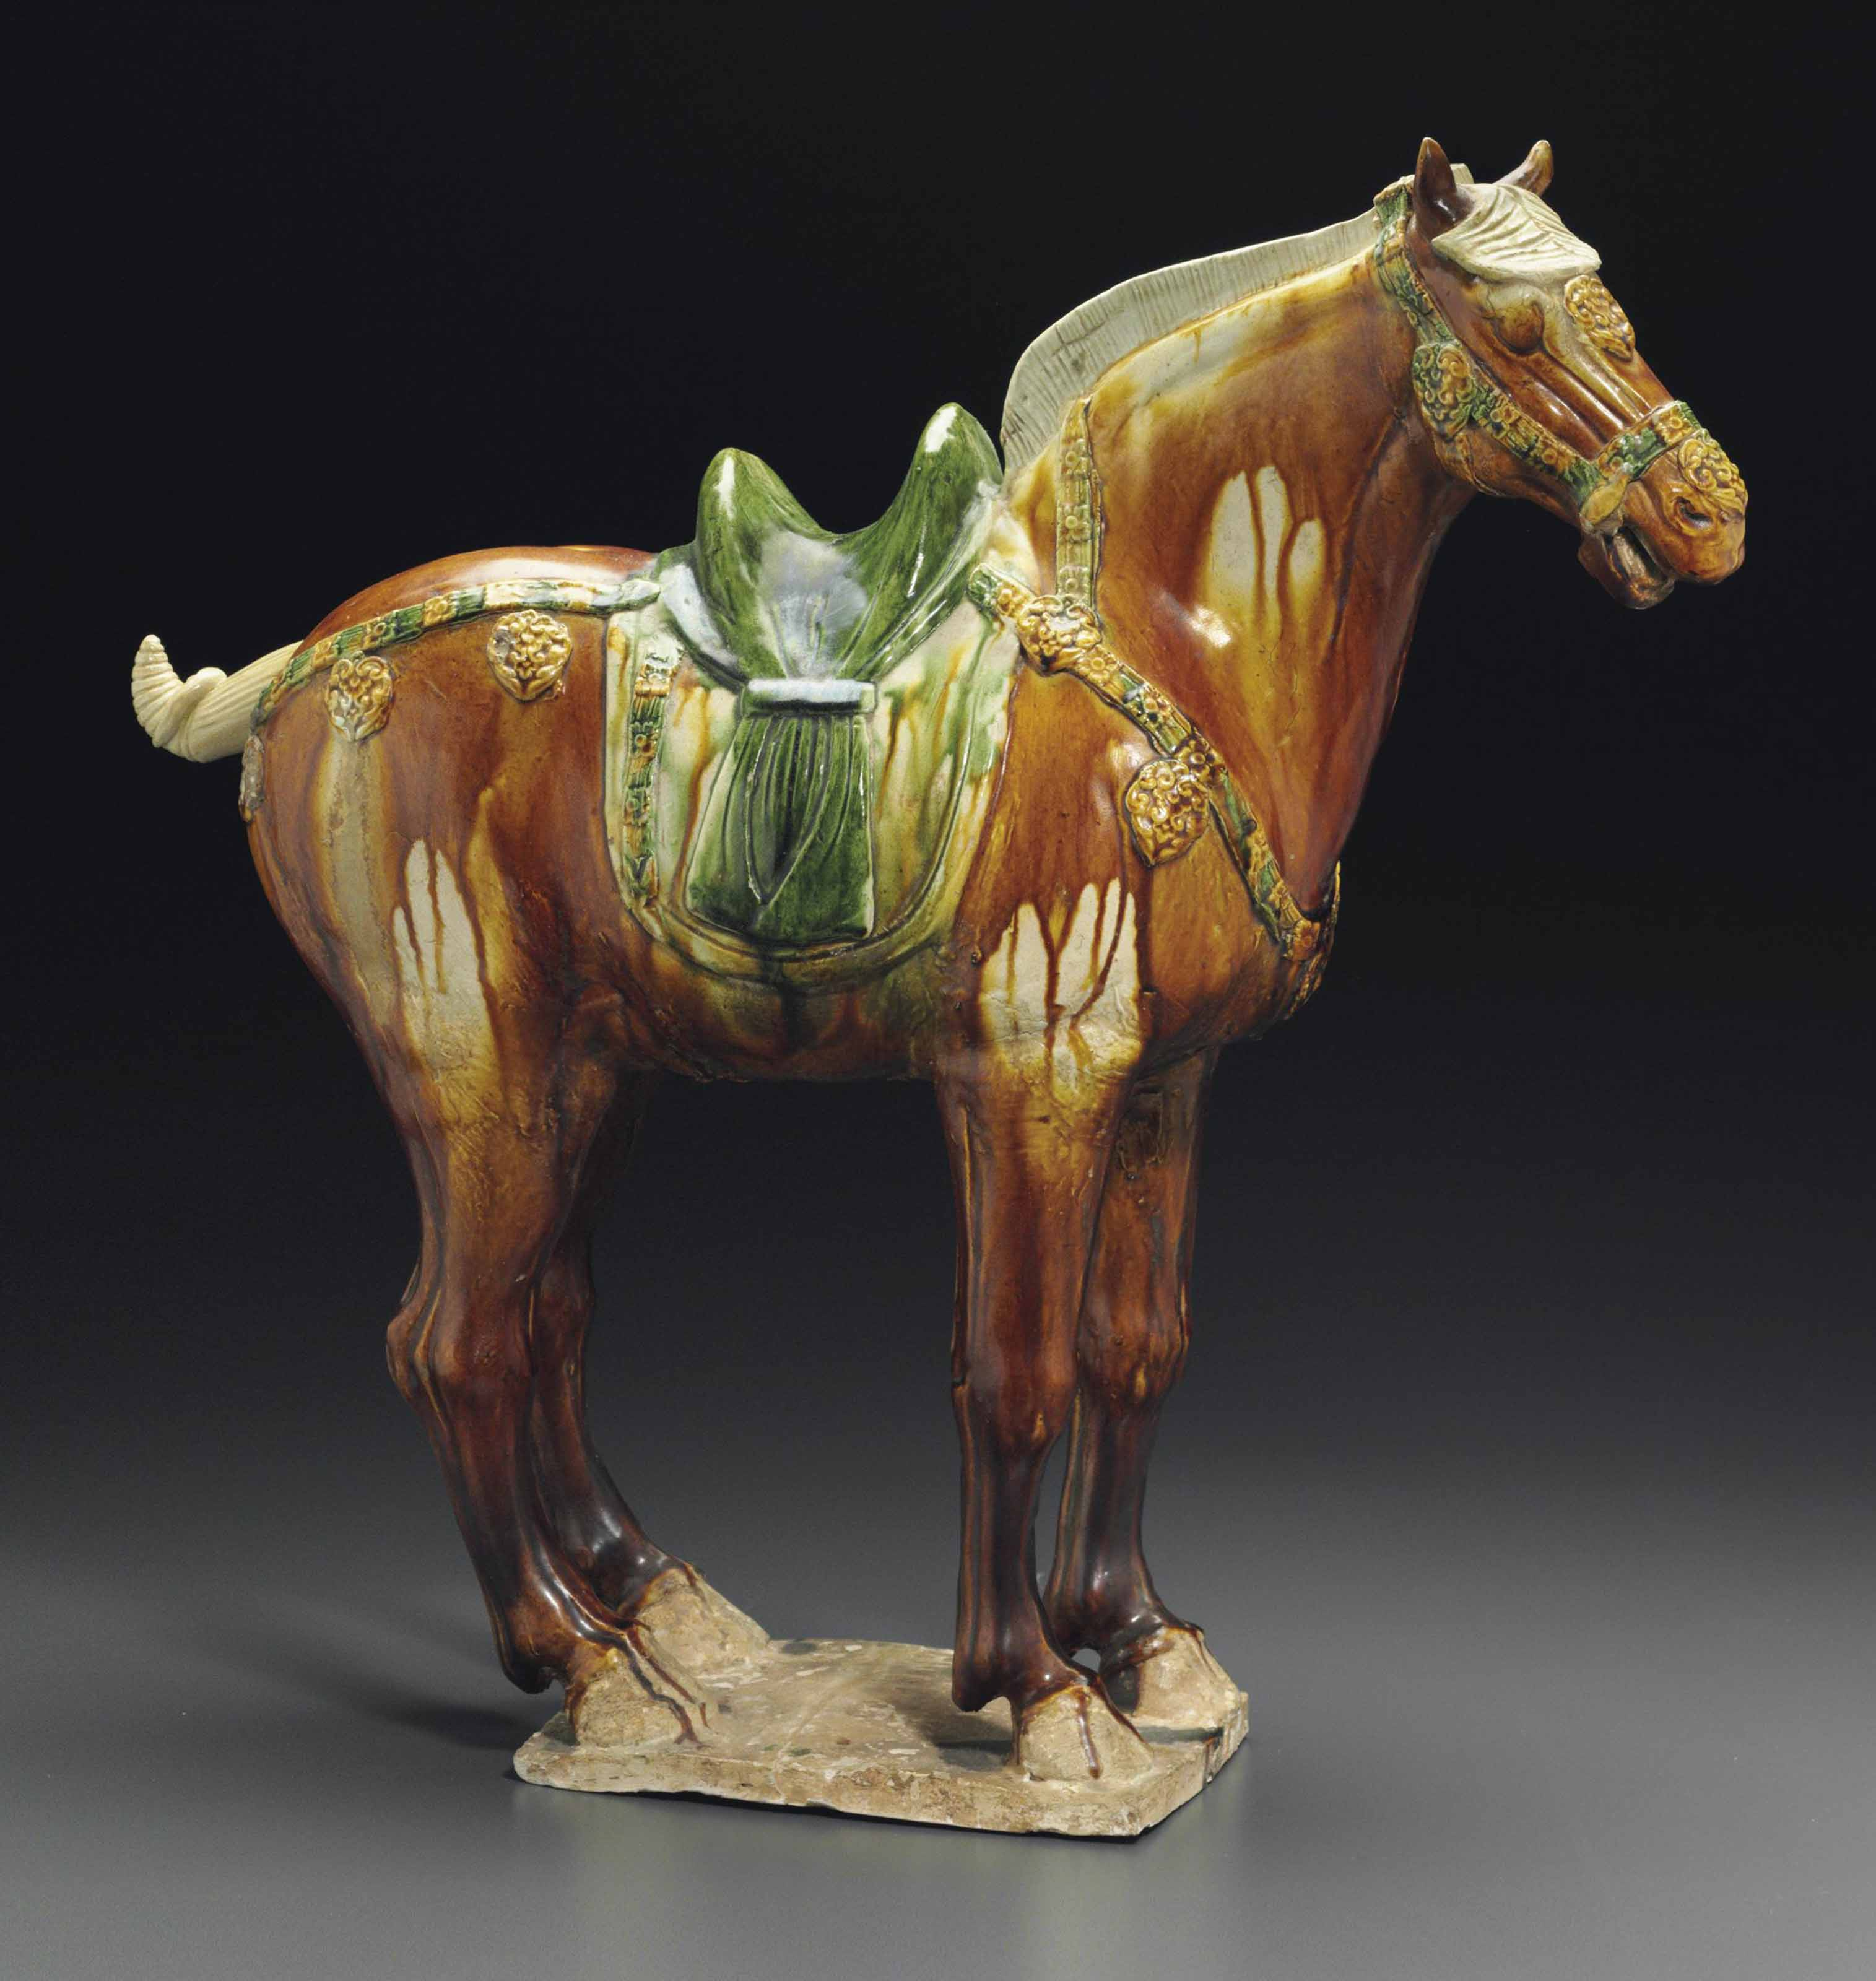 A SANCAI-GLAZED POTTERY FIGURE OF A HORSE | TANG DYNASTY (AD